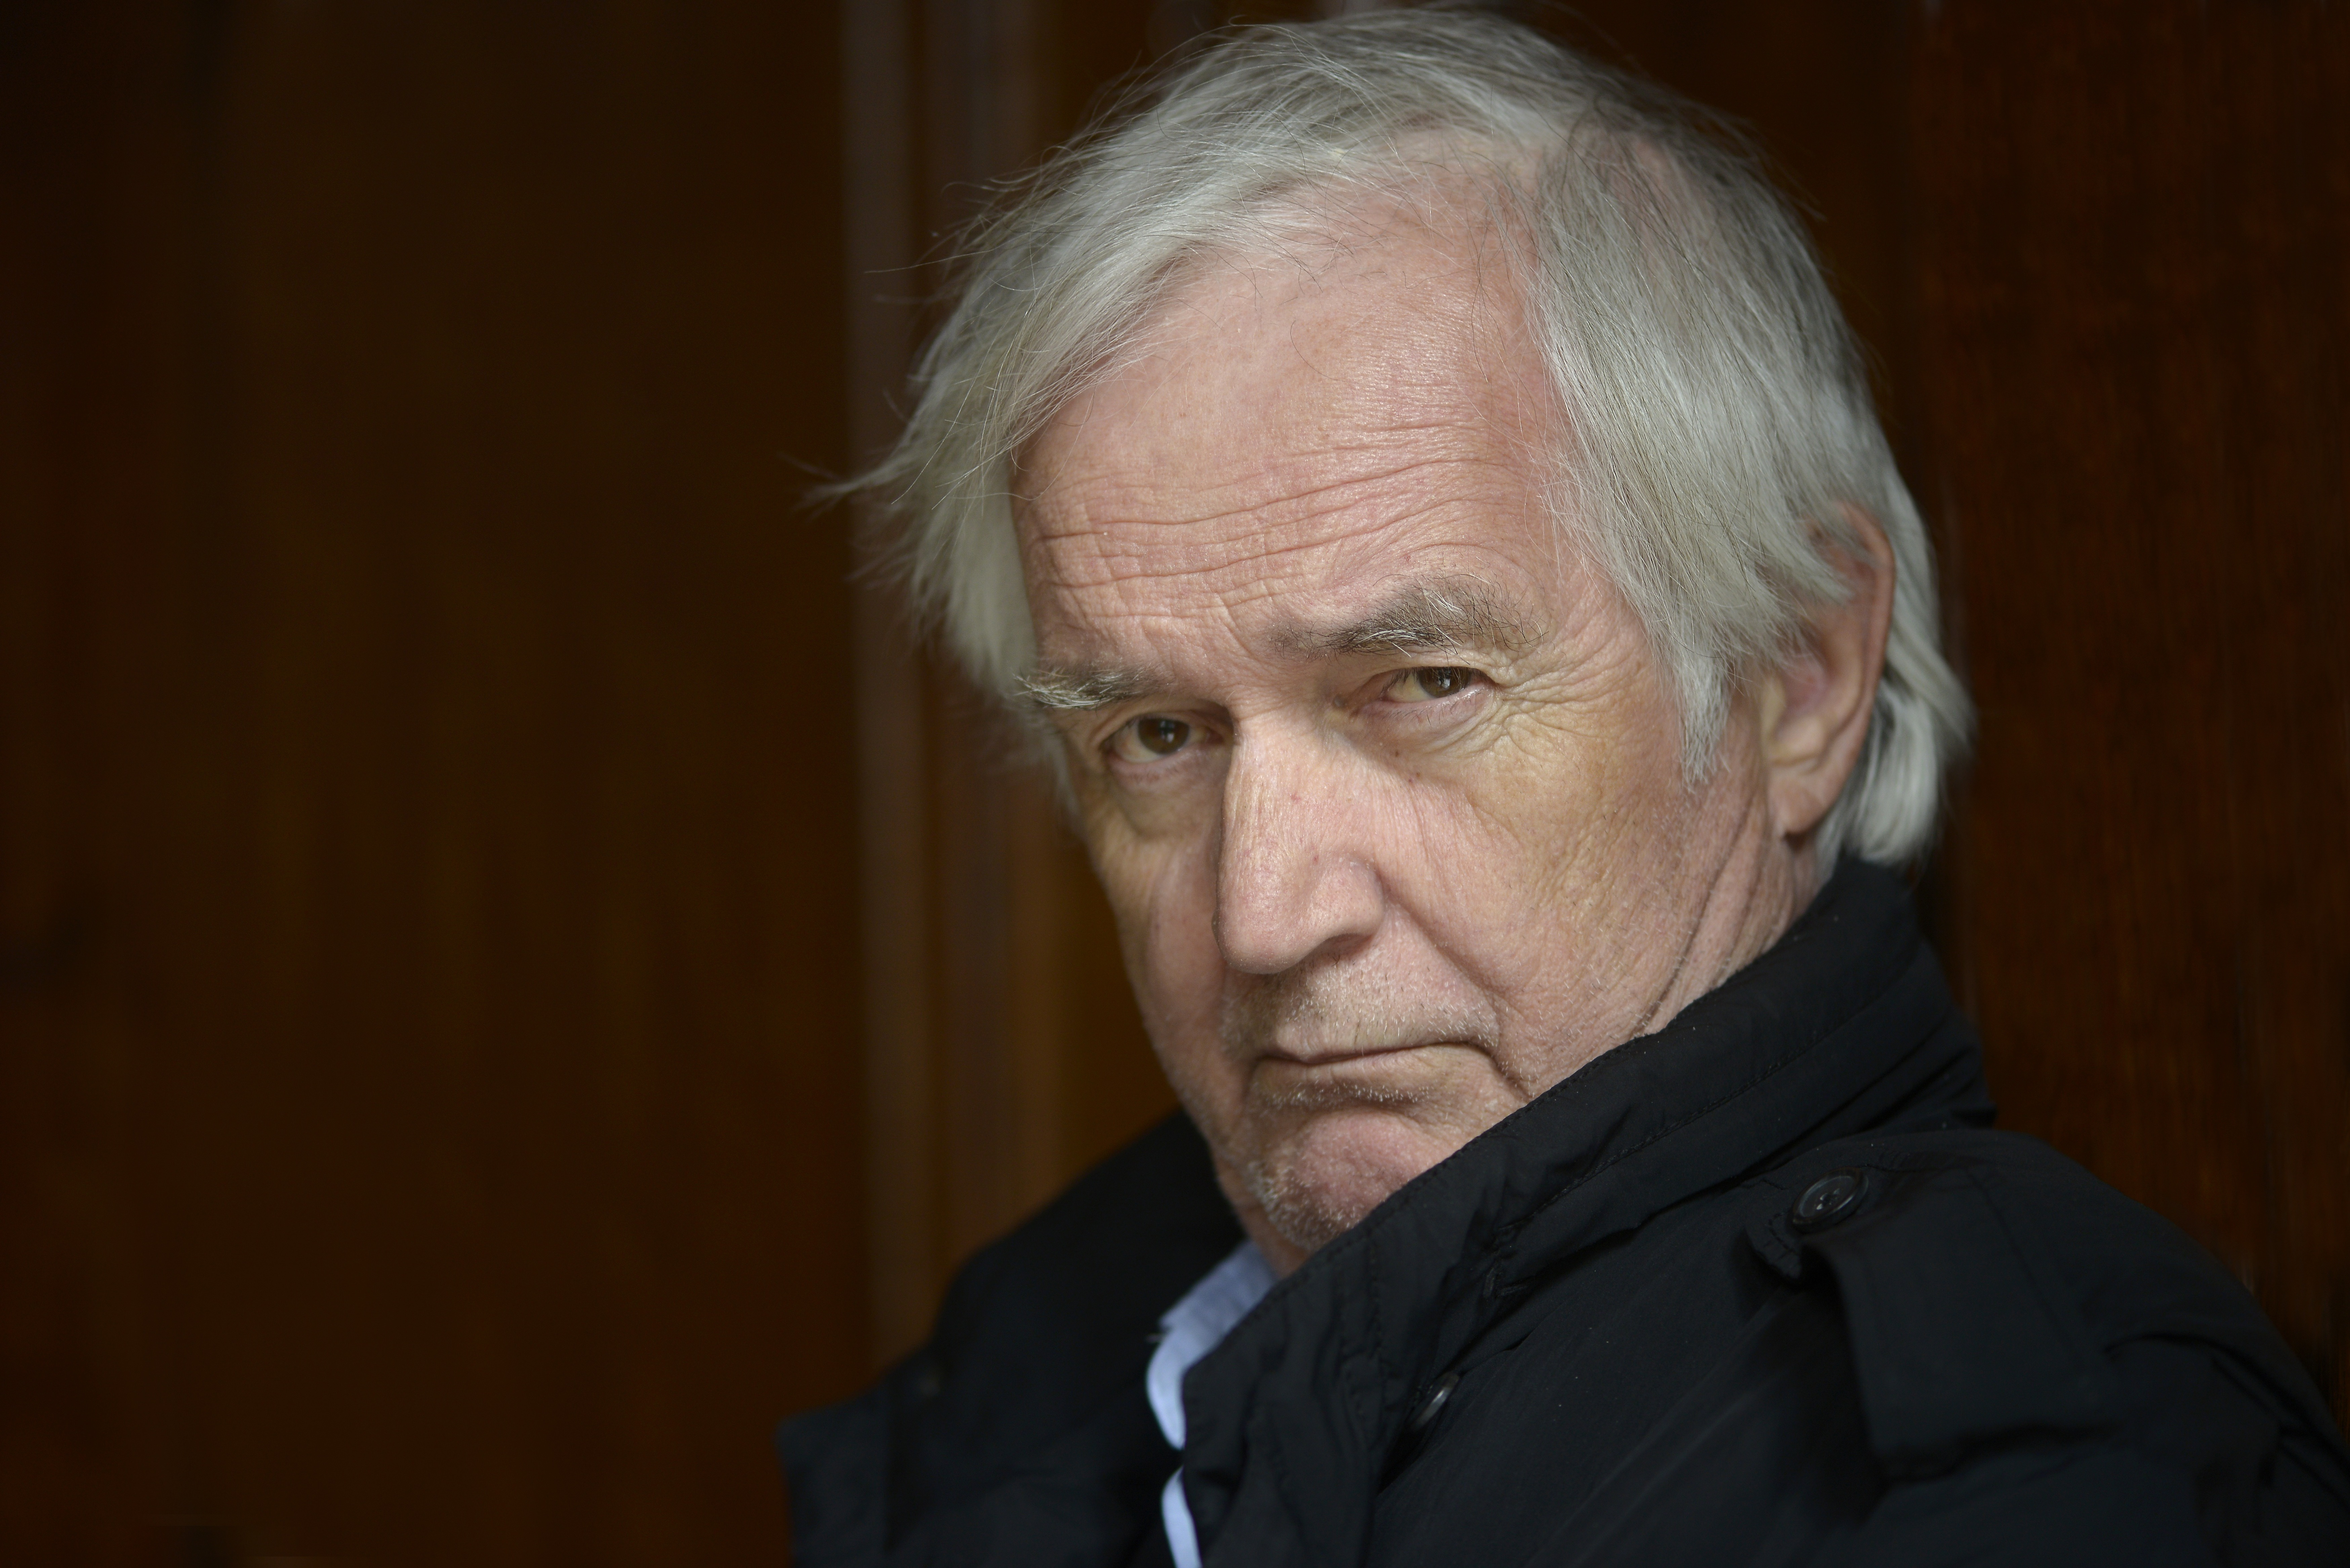 Swedish writer Henning Mankell poses during a portrait session held on March 30, 2013 in Lyon, France.